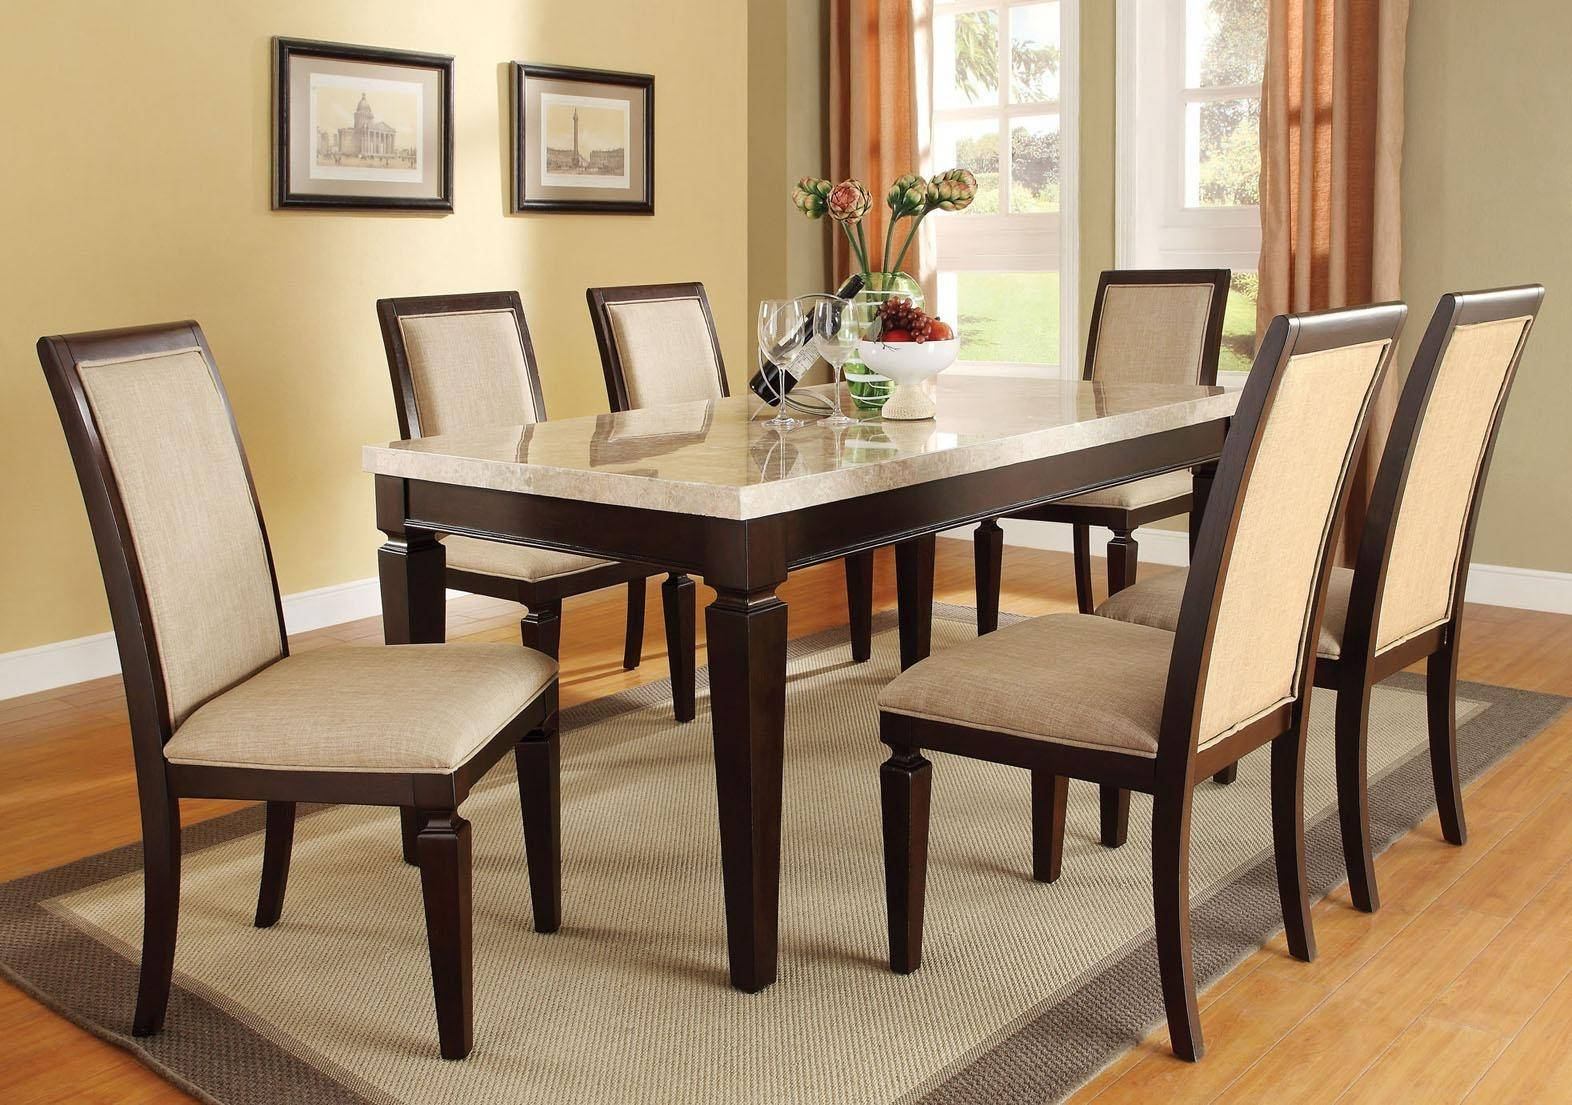 Acme 70485 Agatha White Marble Top Espresso Finished